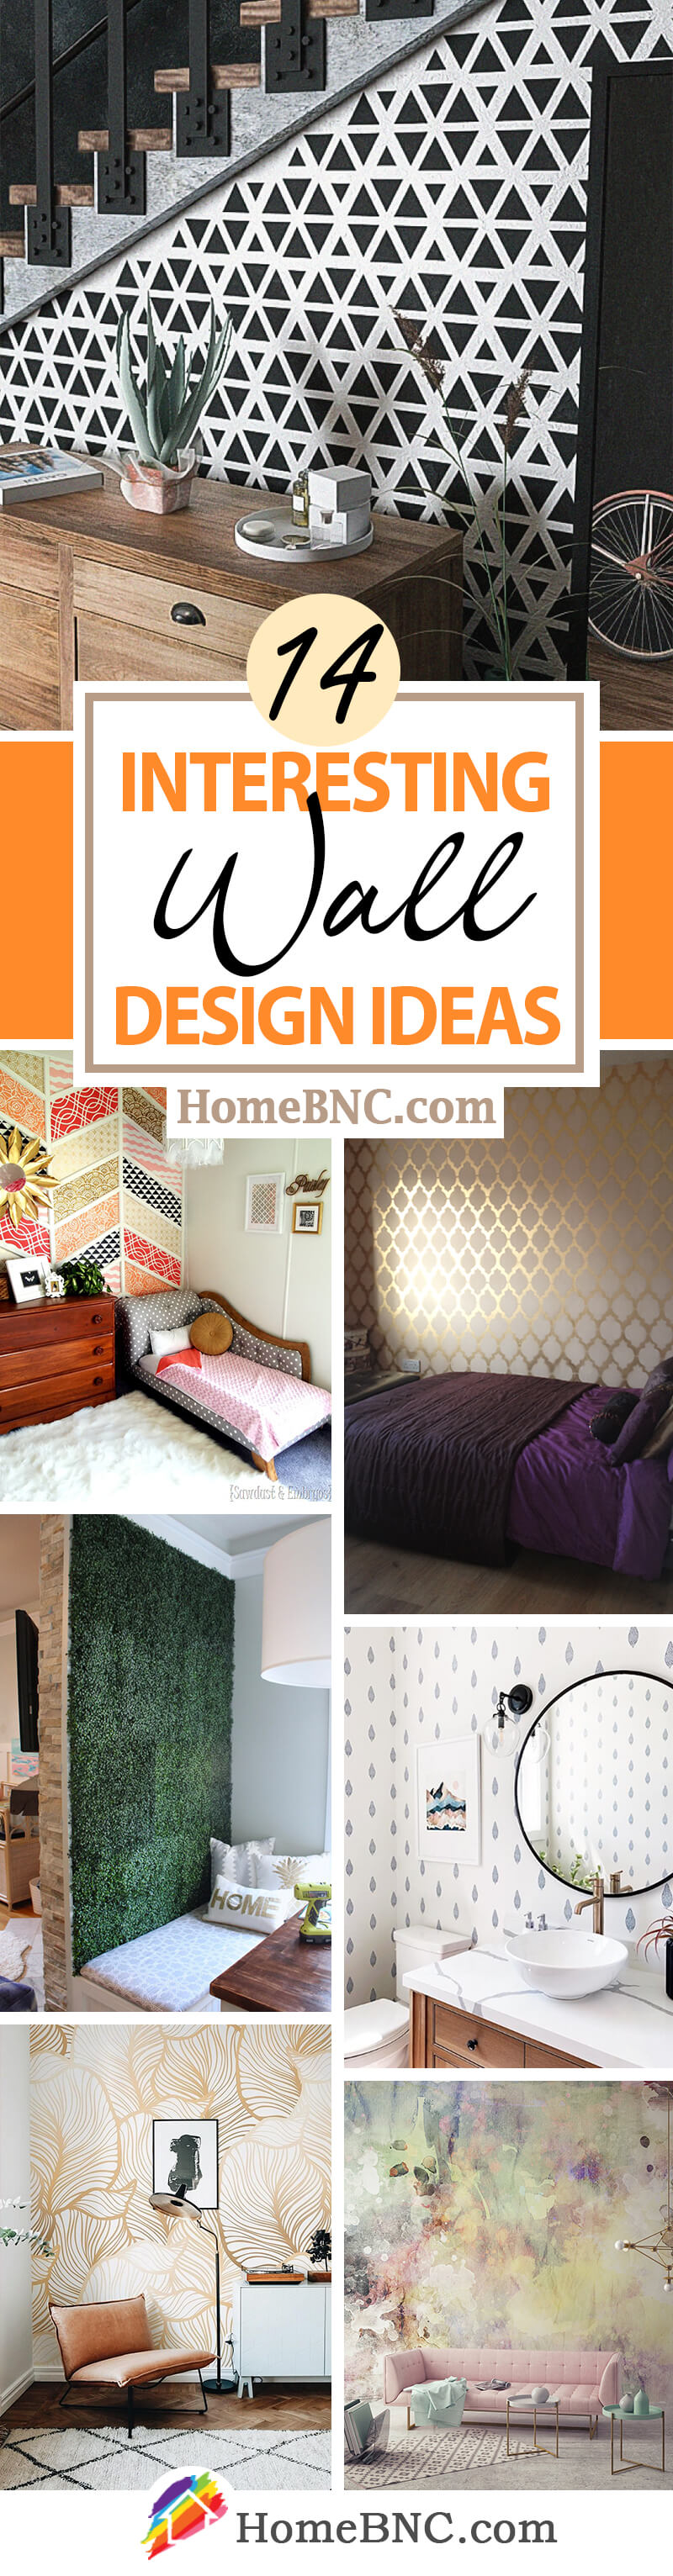 14 Eye Catching Wall Design Ideas To Inspire Your Creative Side